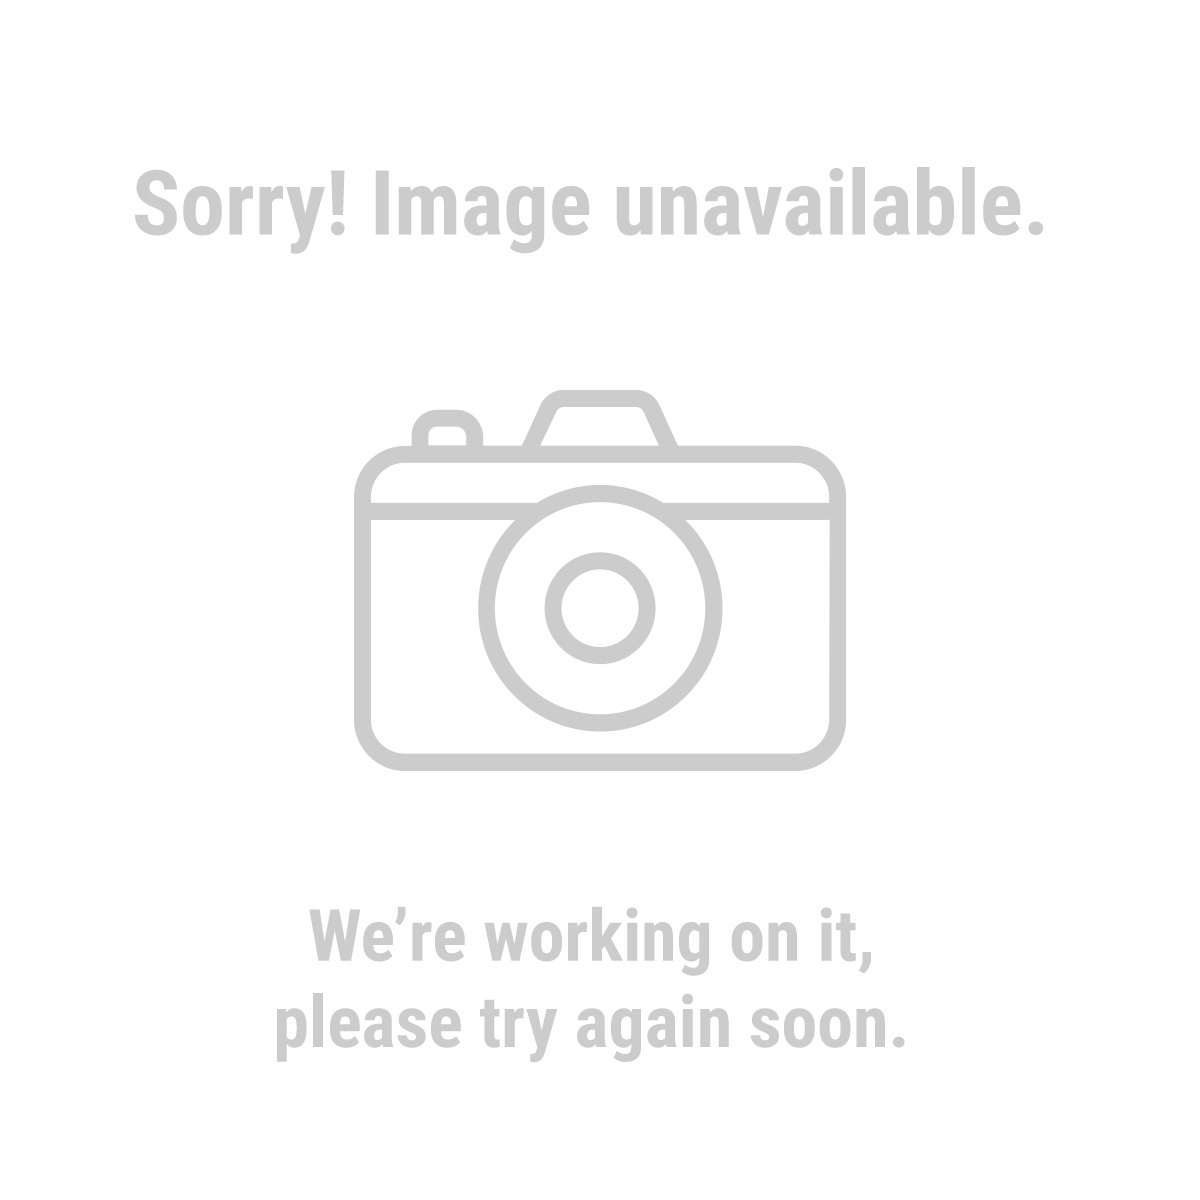 Pittsburgh 94607 8 Piece Professional Screwdriver Set